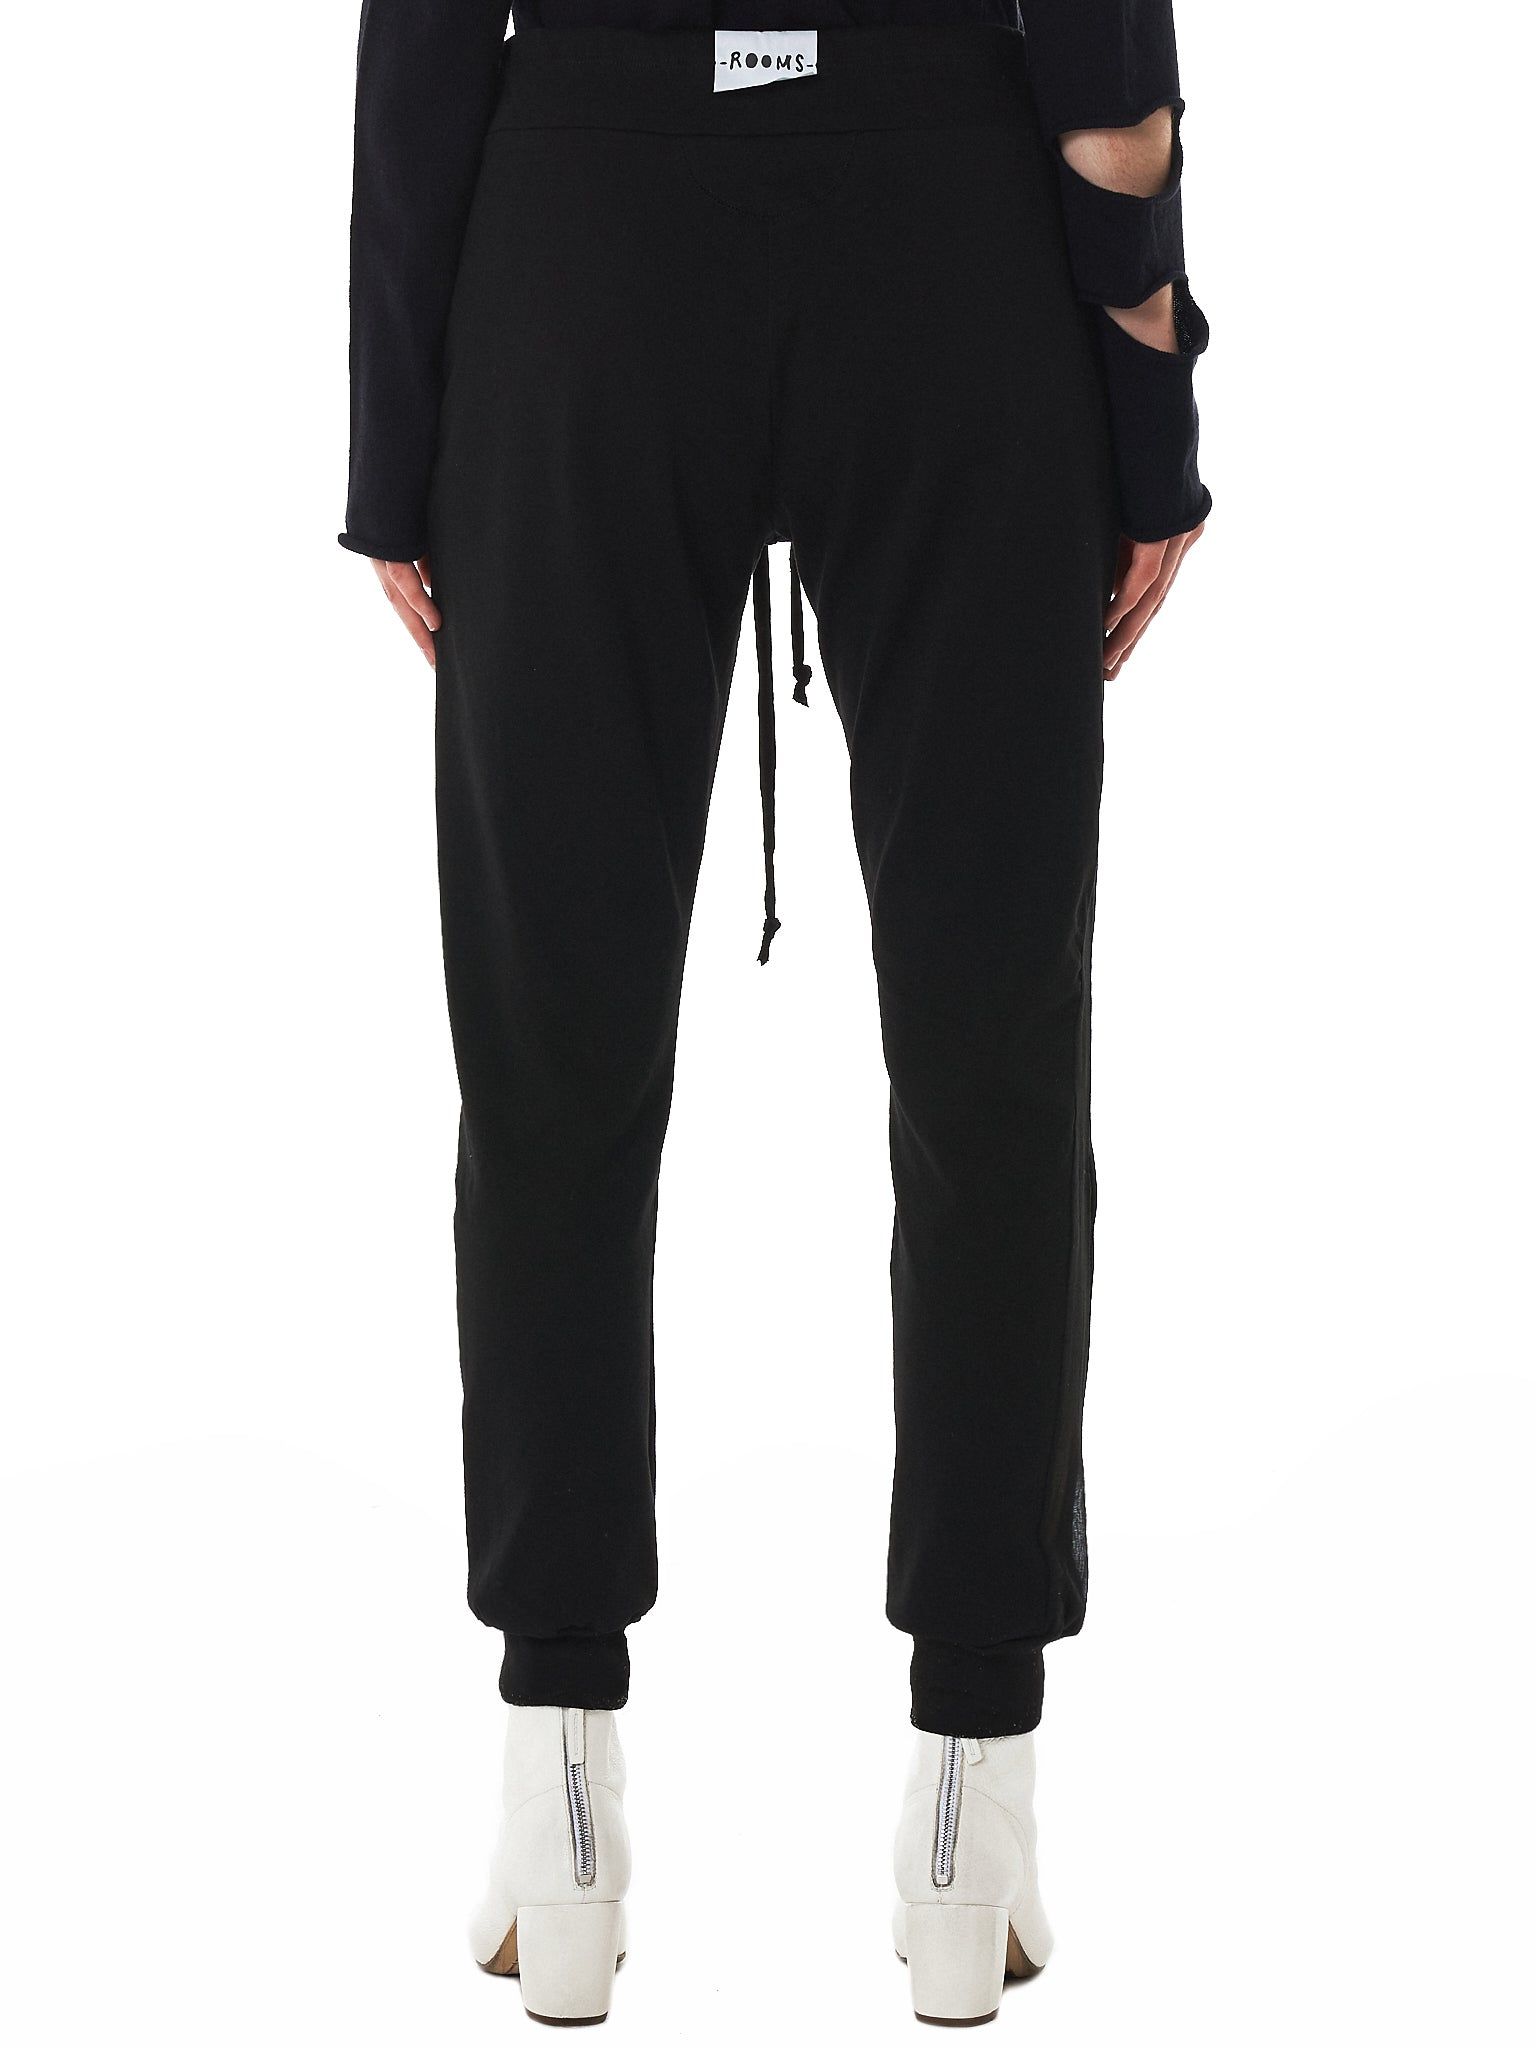 Lost & Found Rooms Slim Joggers - Hlorenzo Back